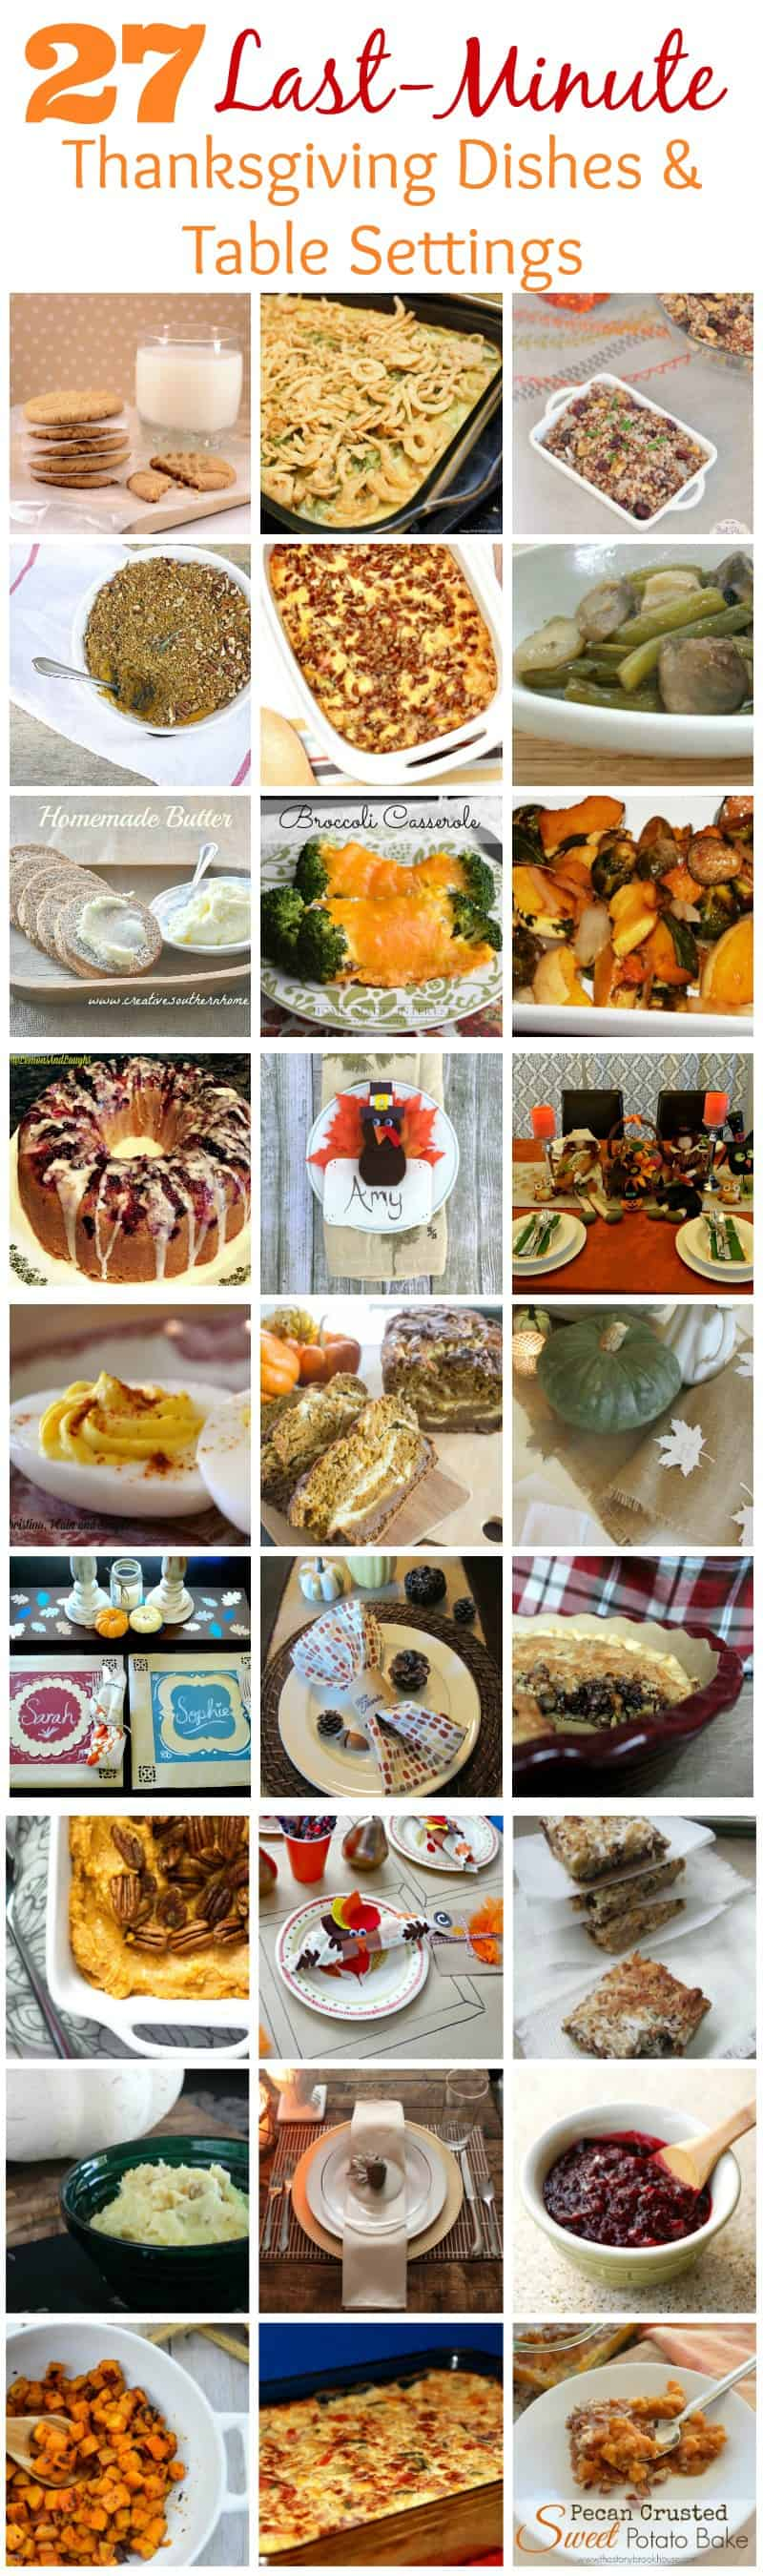 27 Thanksgiving Dishes and Table Settings